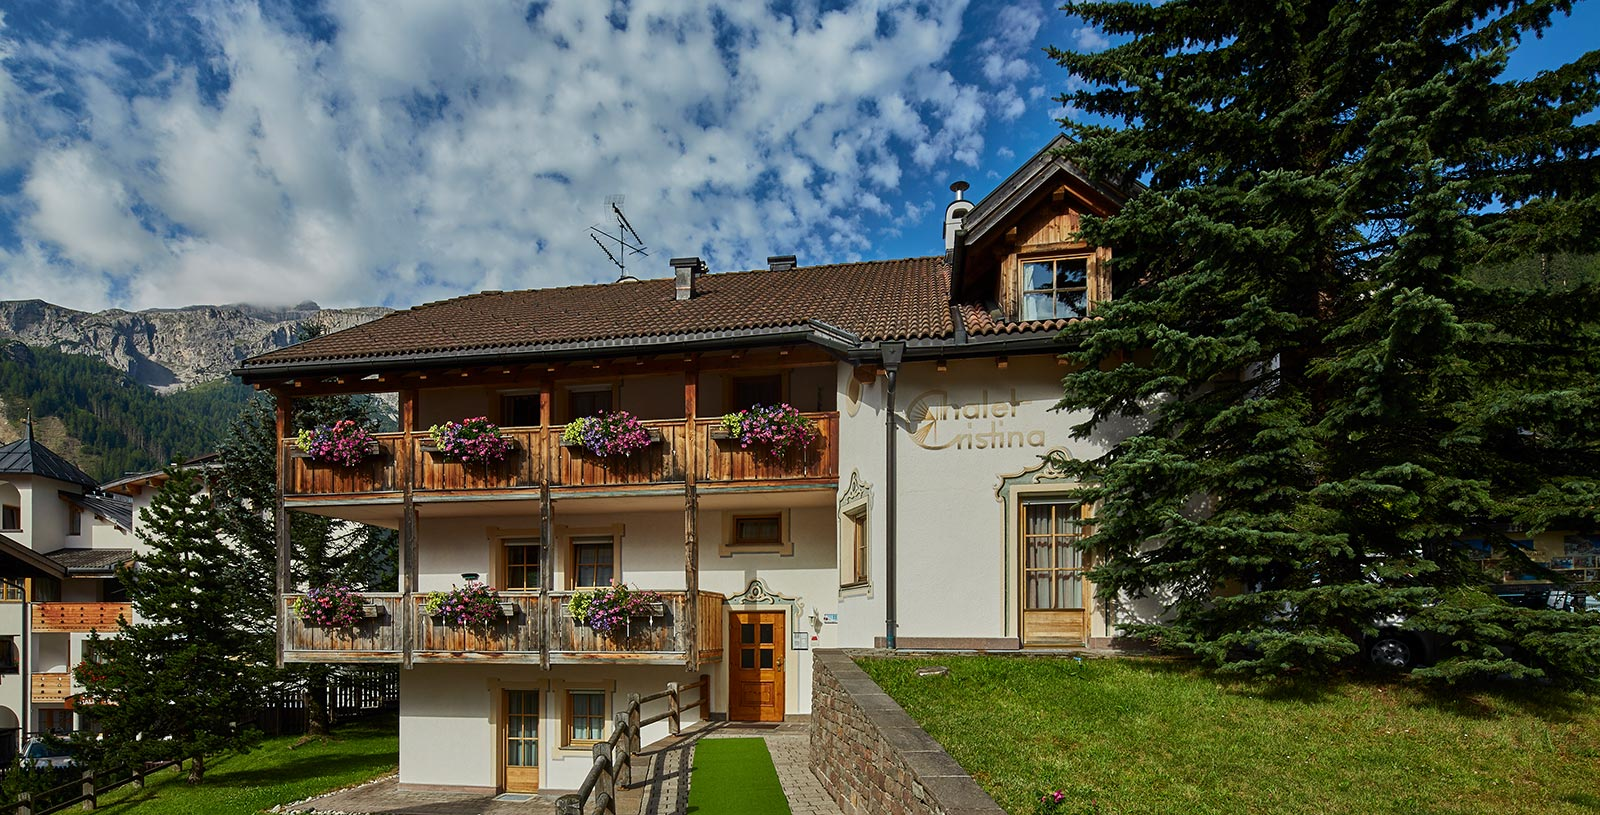 The building of the Chalet Cristina in Corvara in classic South Tyrolean style